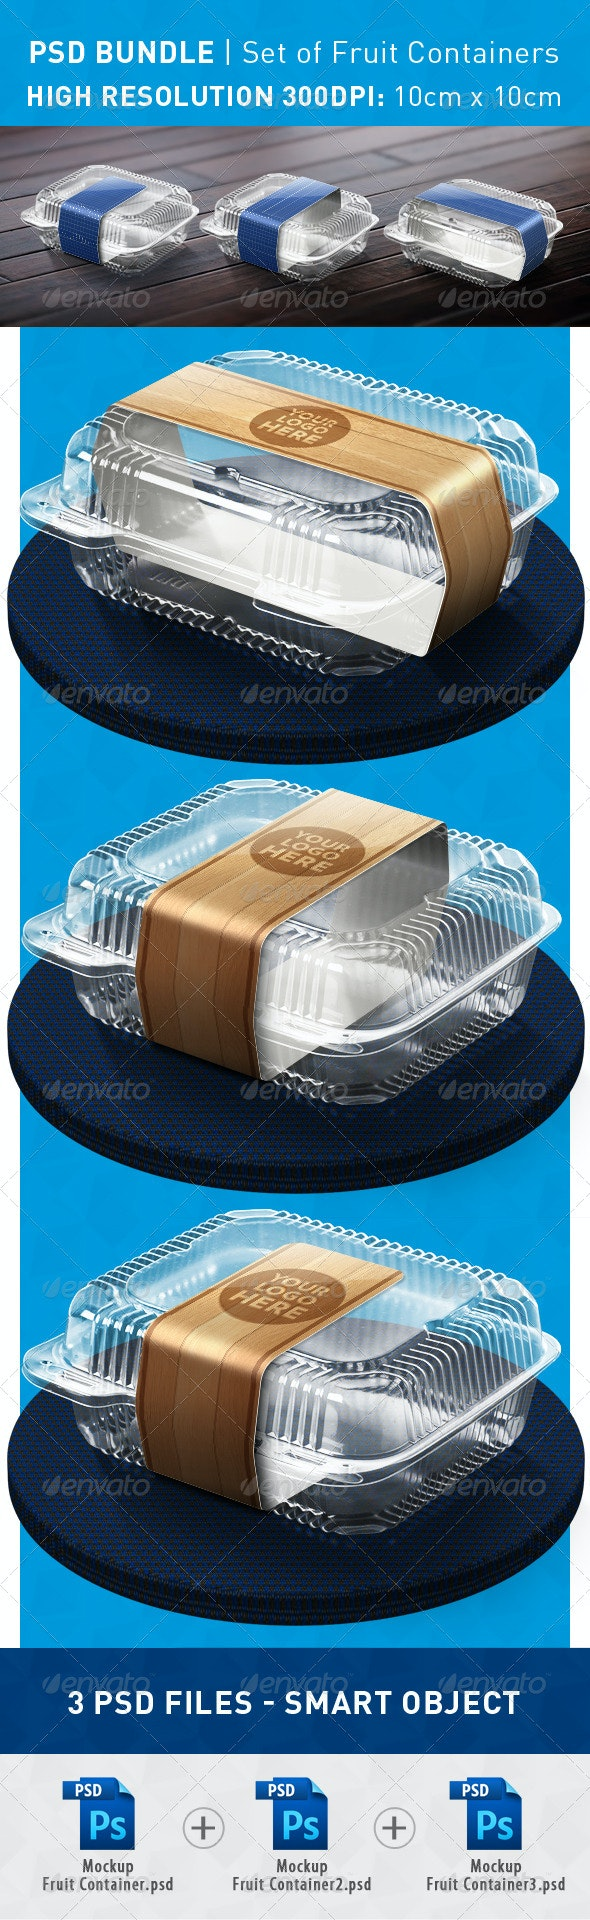 Fruit Container Mockup - Product Mock-Ups Graphics